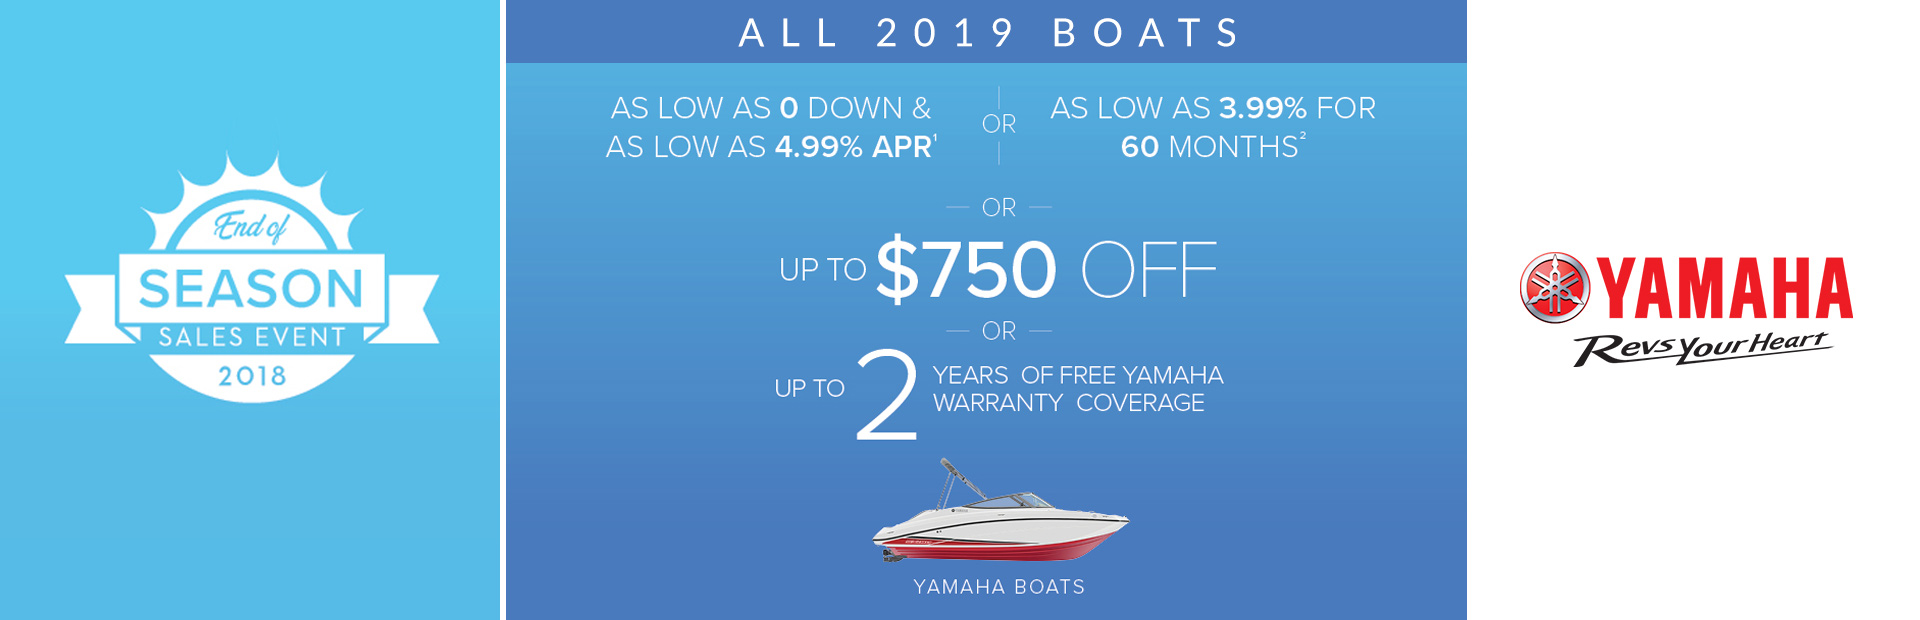 Yamaha: End of Season Sales Event - All 2019 Boats